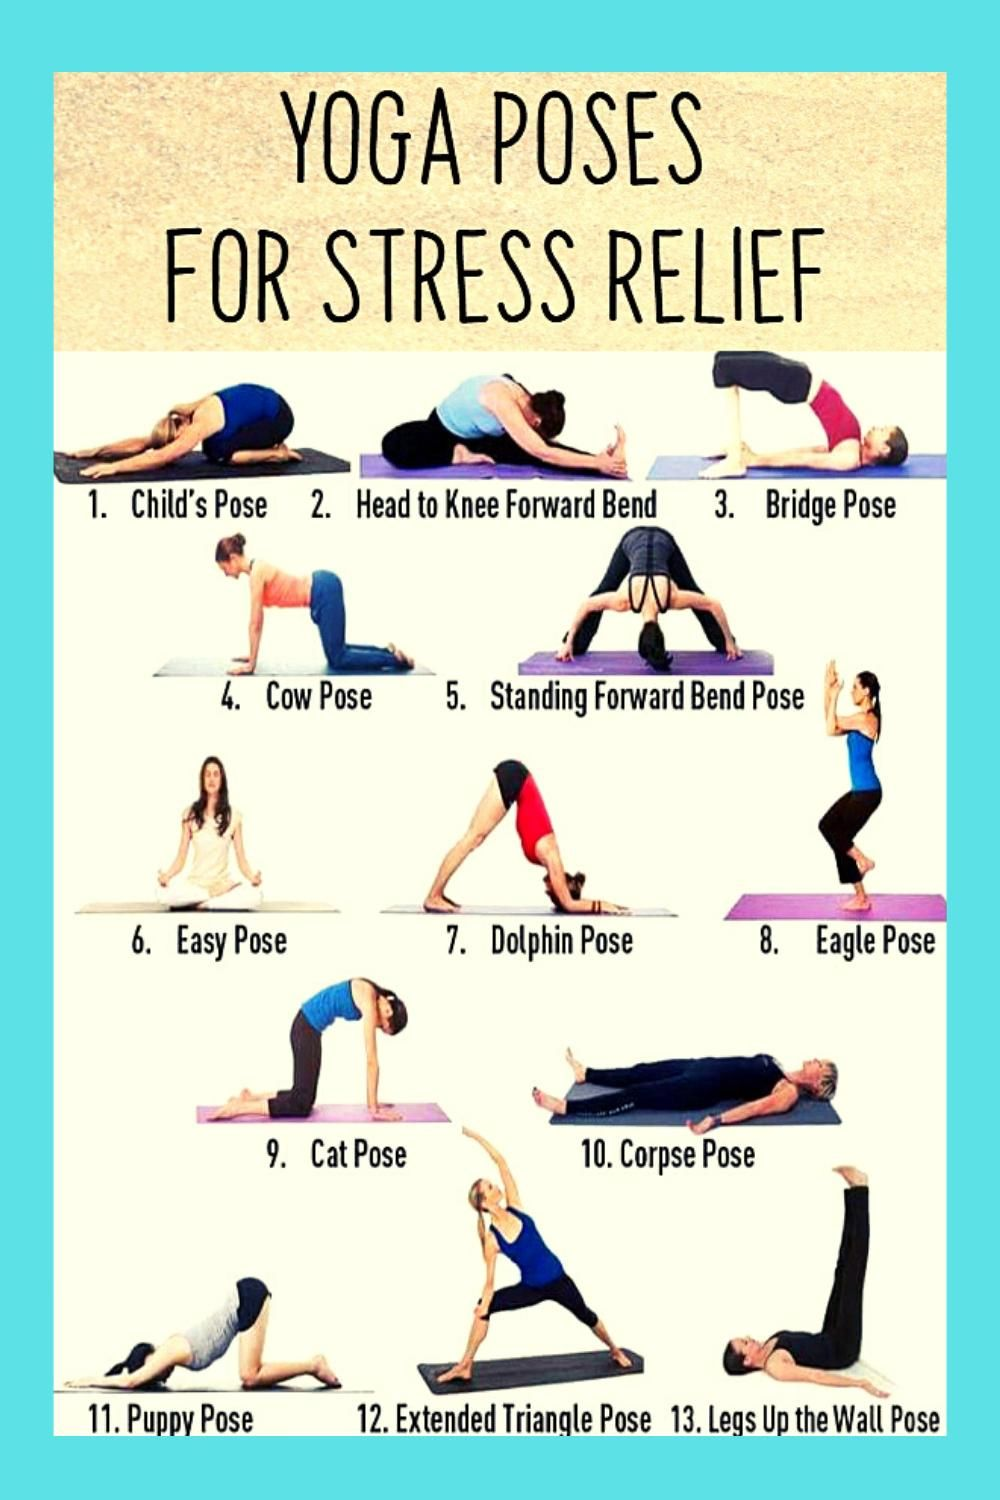 Best Yoga Poses For Stress Relief For Women S Men S And Kids Video In 2021 Yoga Poses Yoga Poses For Beginners Easy Yoga Poses